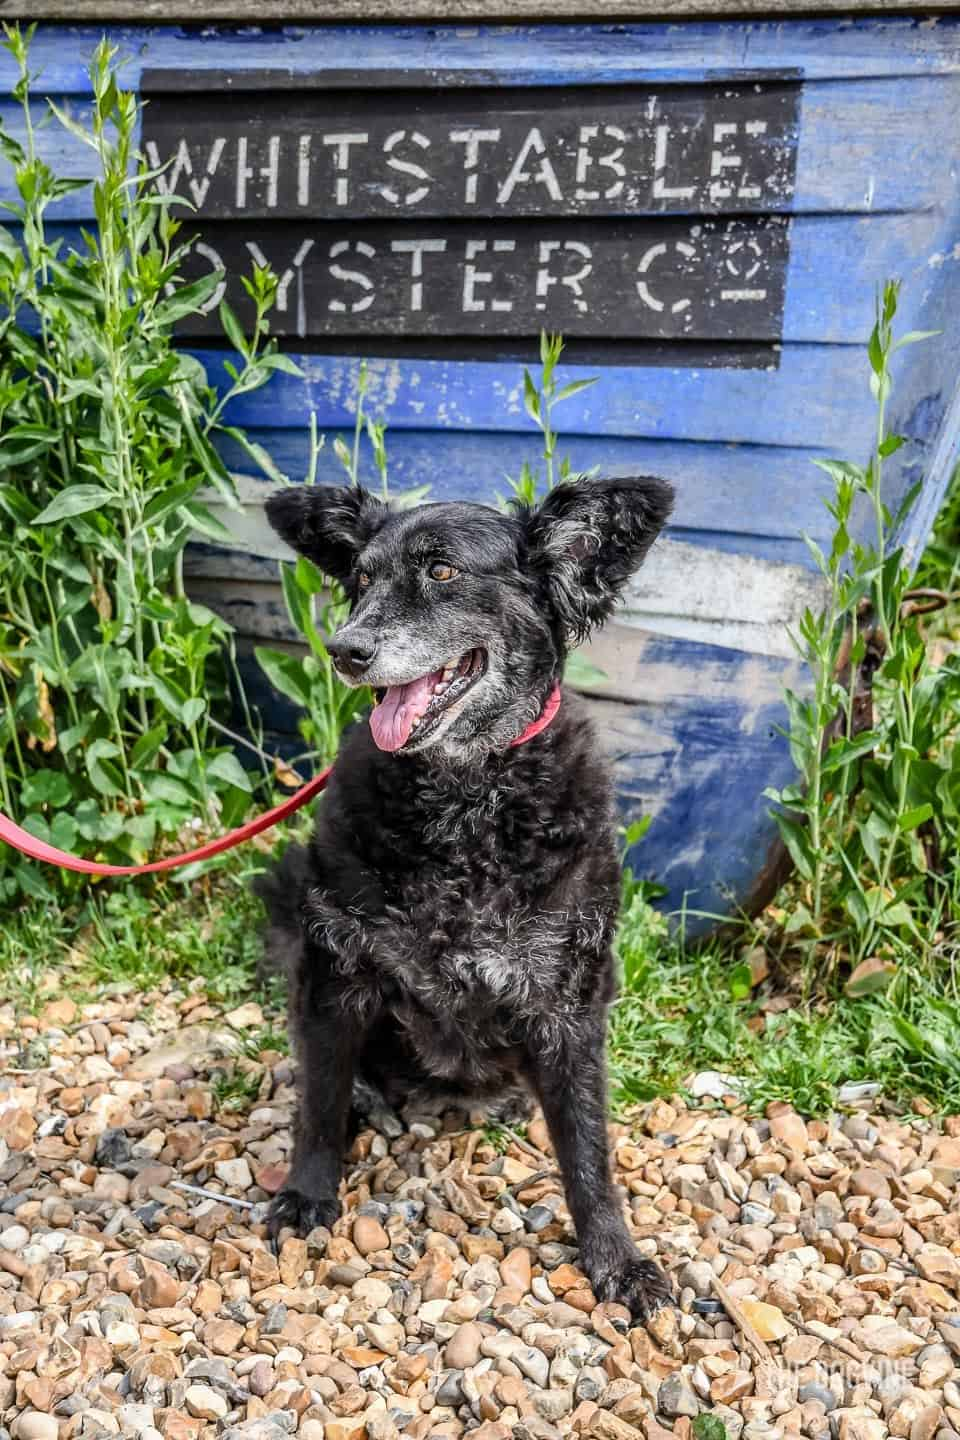 Dogs Day Out With Fetch & Follow On Tour In Dog-Friendly Whitstable 6